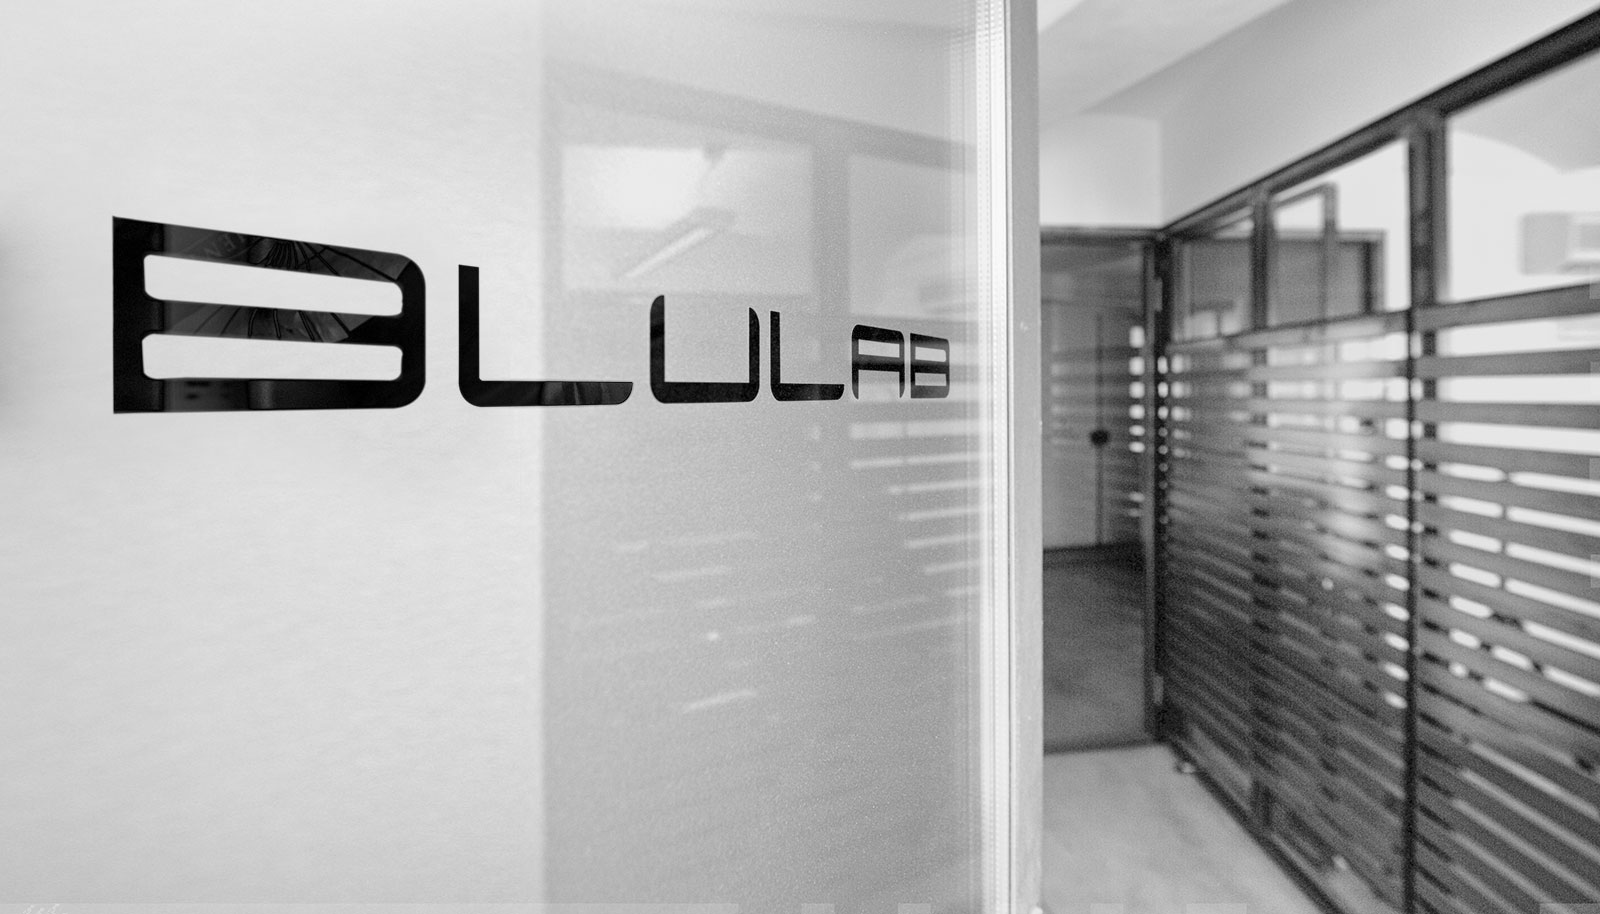 Blulab web agency